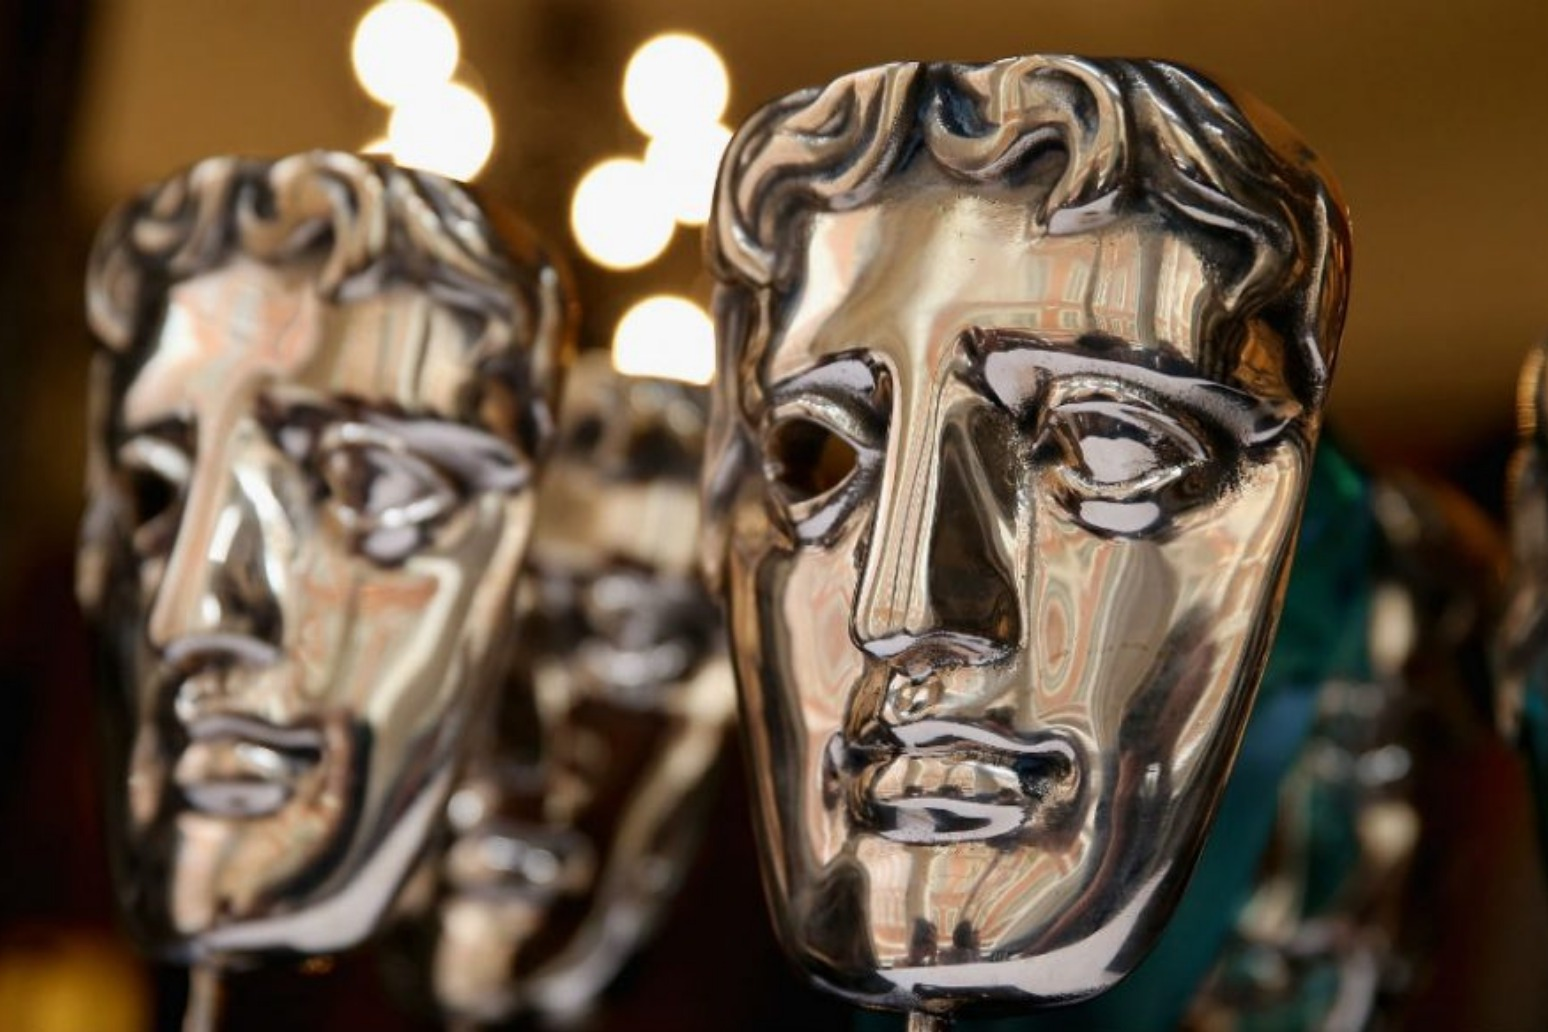 Costume drama The Favourite leads BAFTA awards nominations